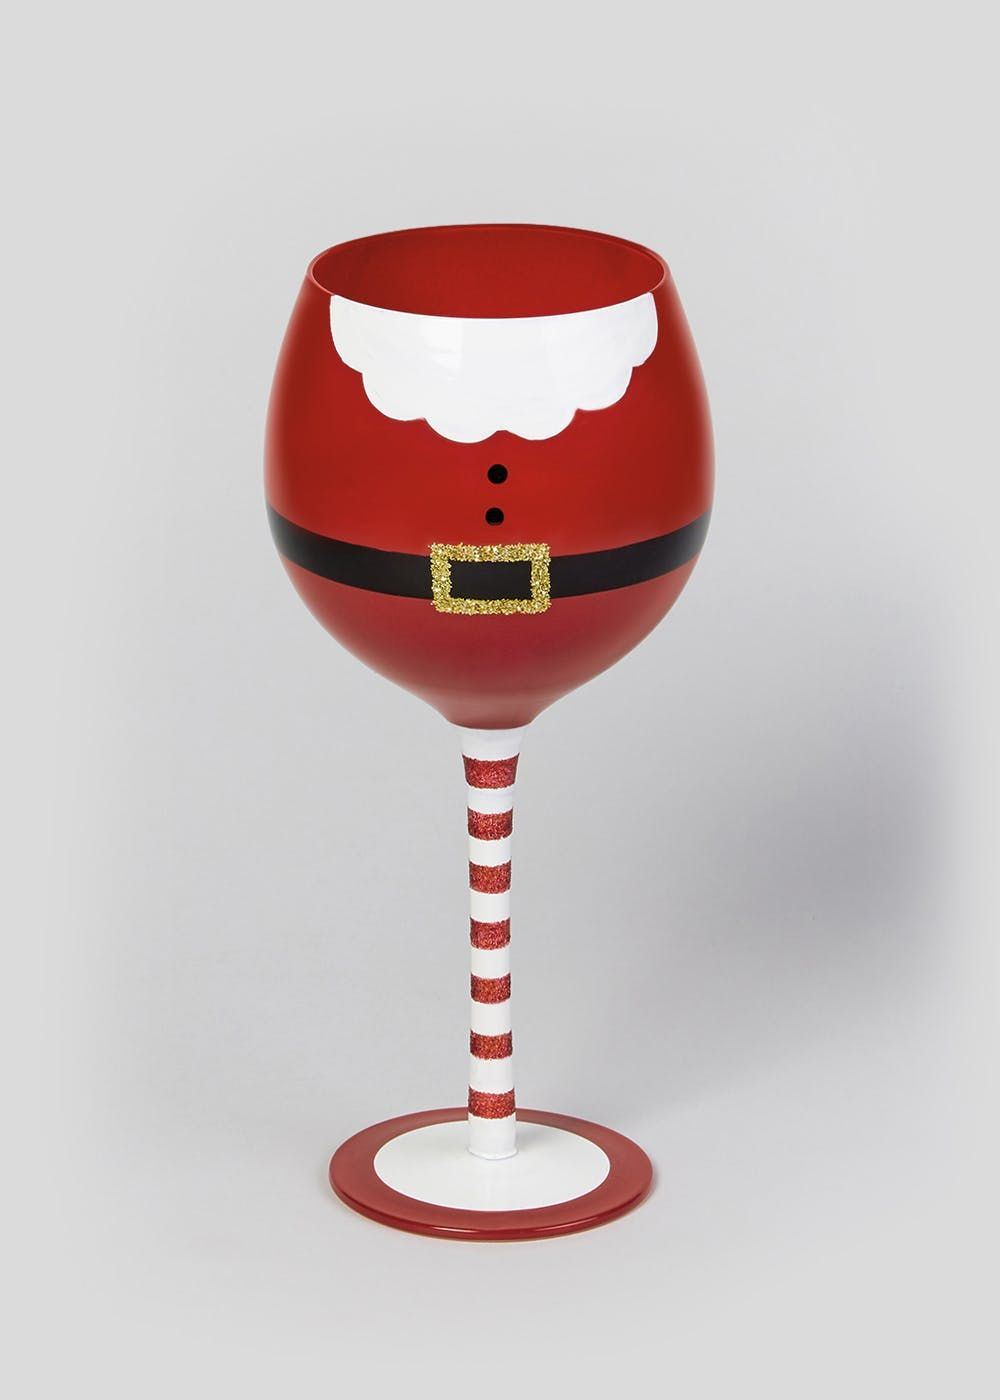 Santa Belly Wine Glass 23cm X 8cm Red Painted Wine Glasses Christmas Halloween Wine Glass Christmas Wine Glasses